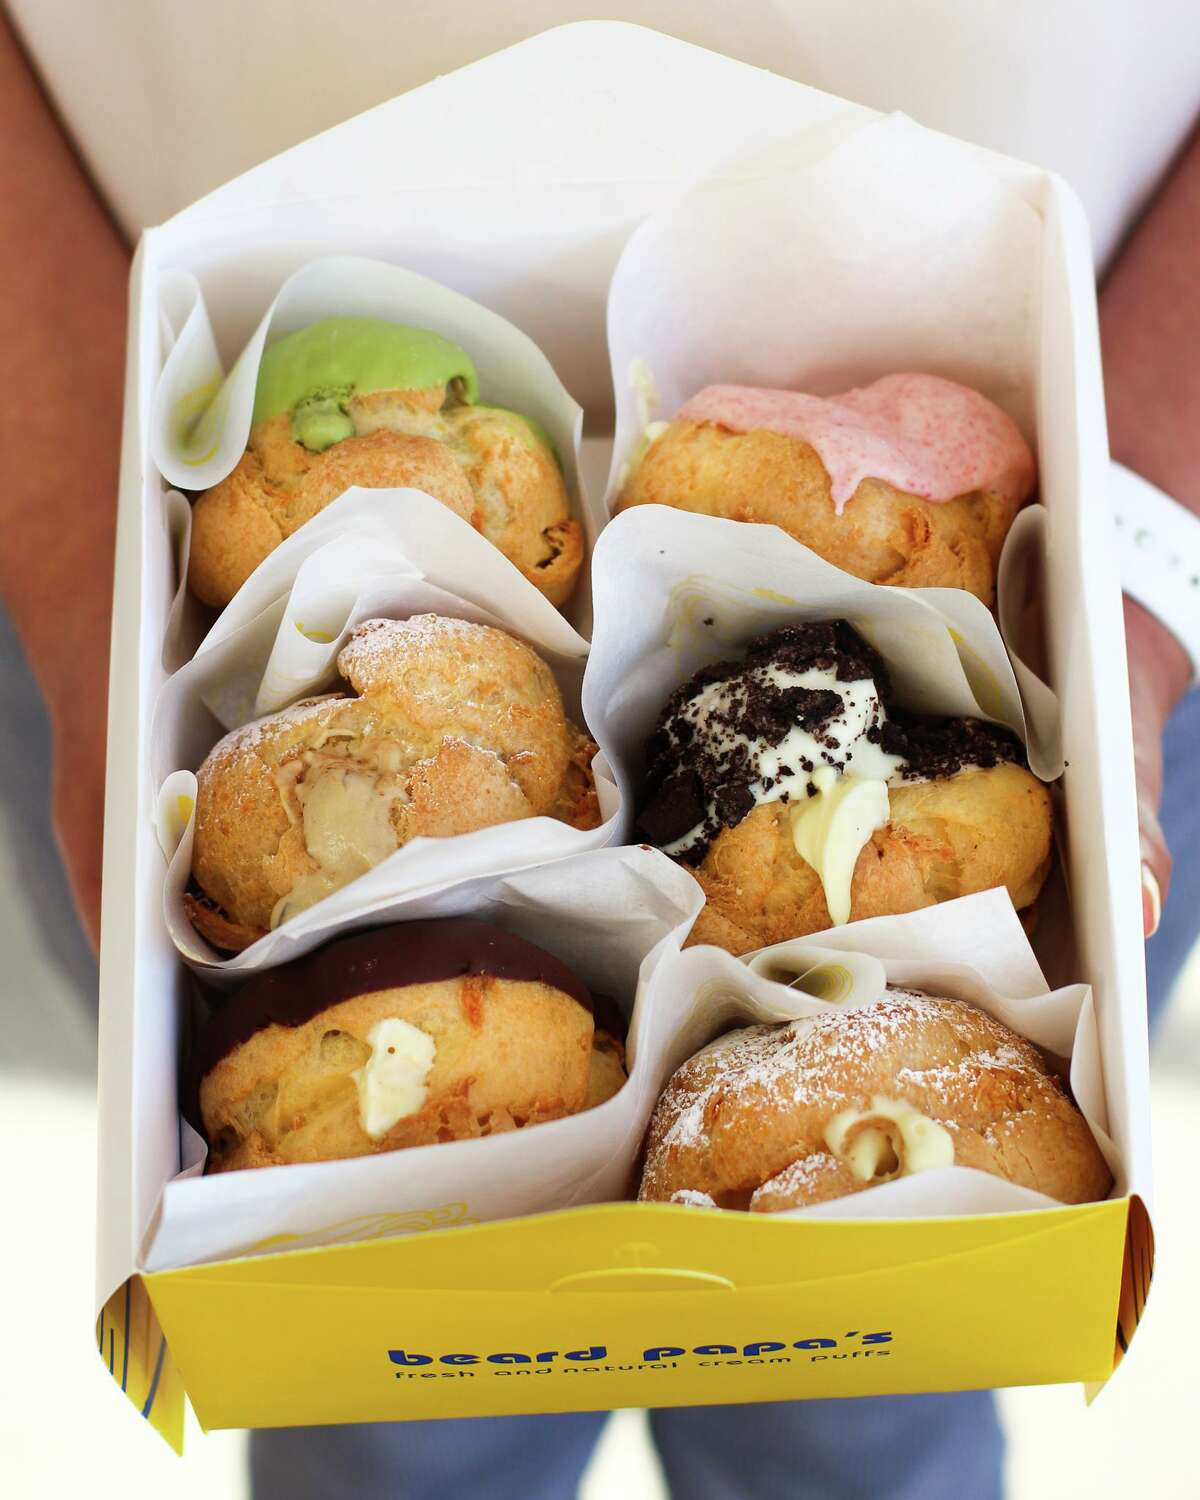 Beard Papa's, a Japanese cream puff chain, will open a new location in The Market at Springwoods Village.